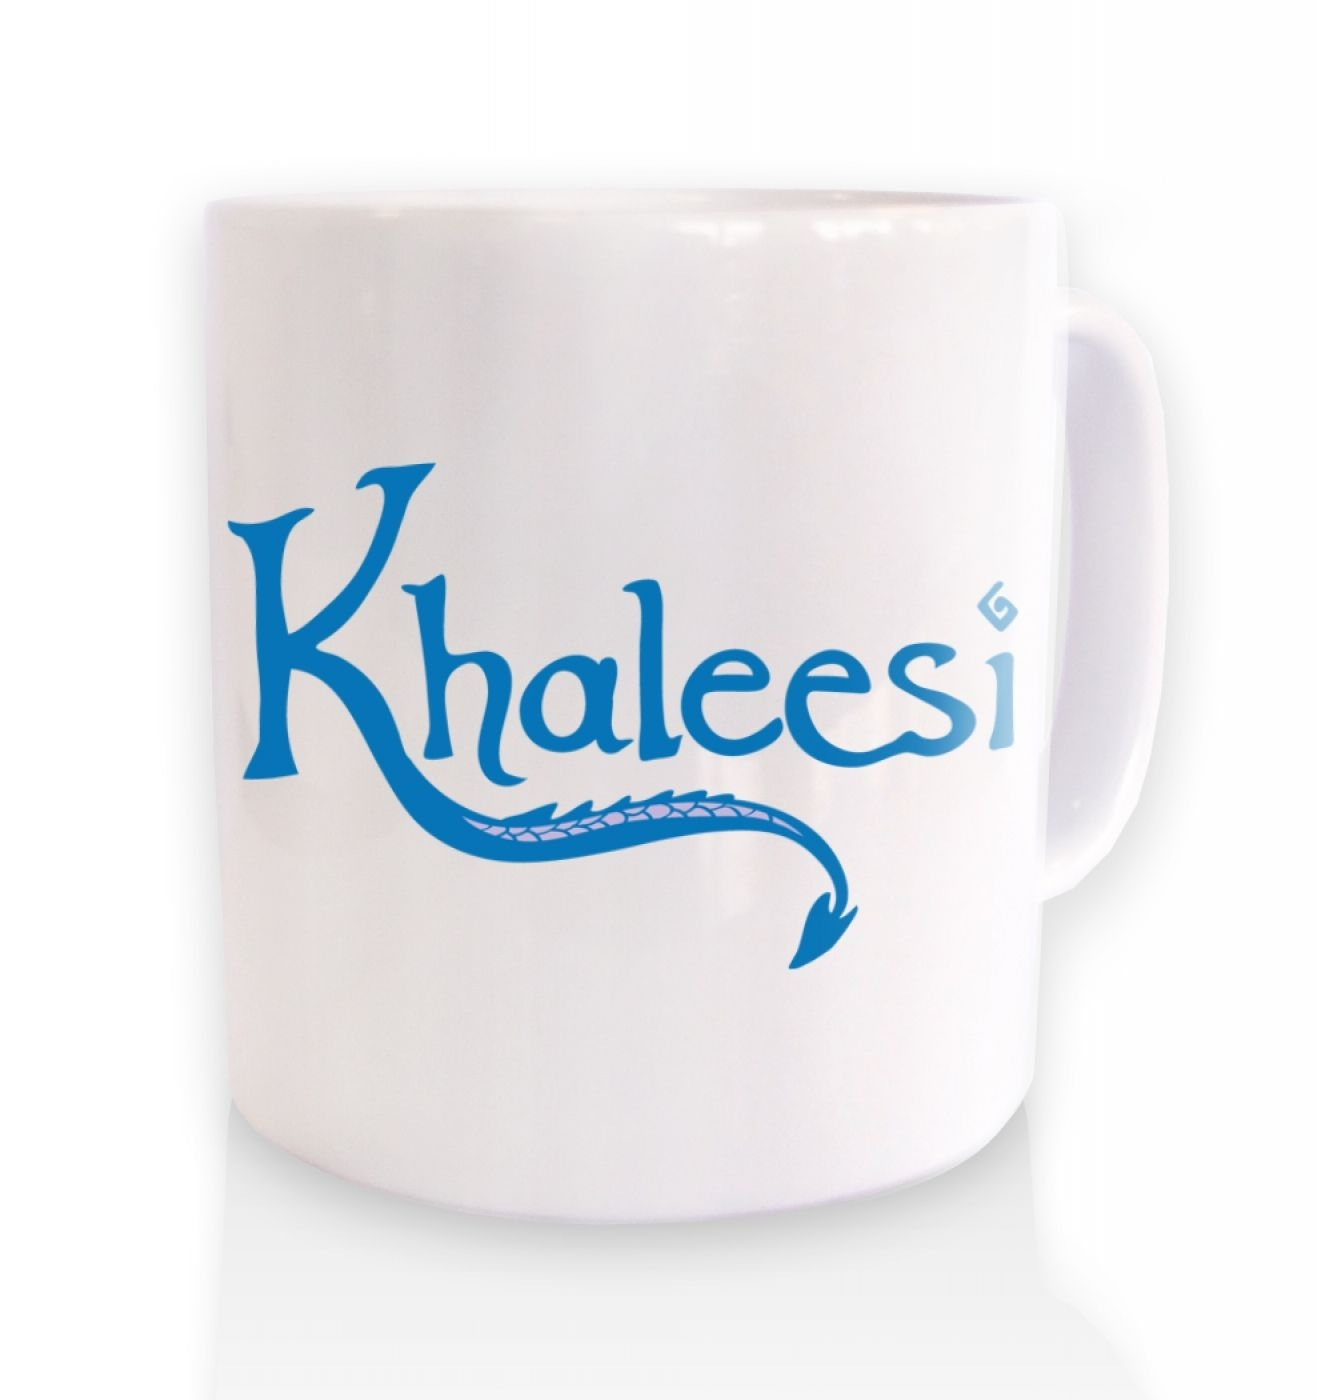 Khaleesi (blue) Mug - Inspired by Game of Thrones